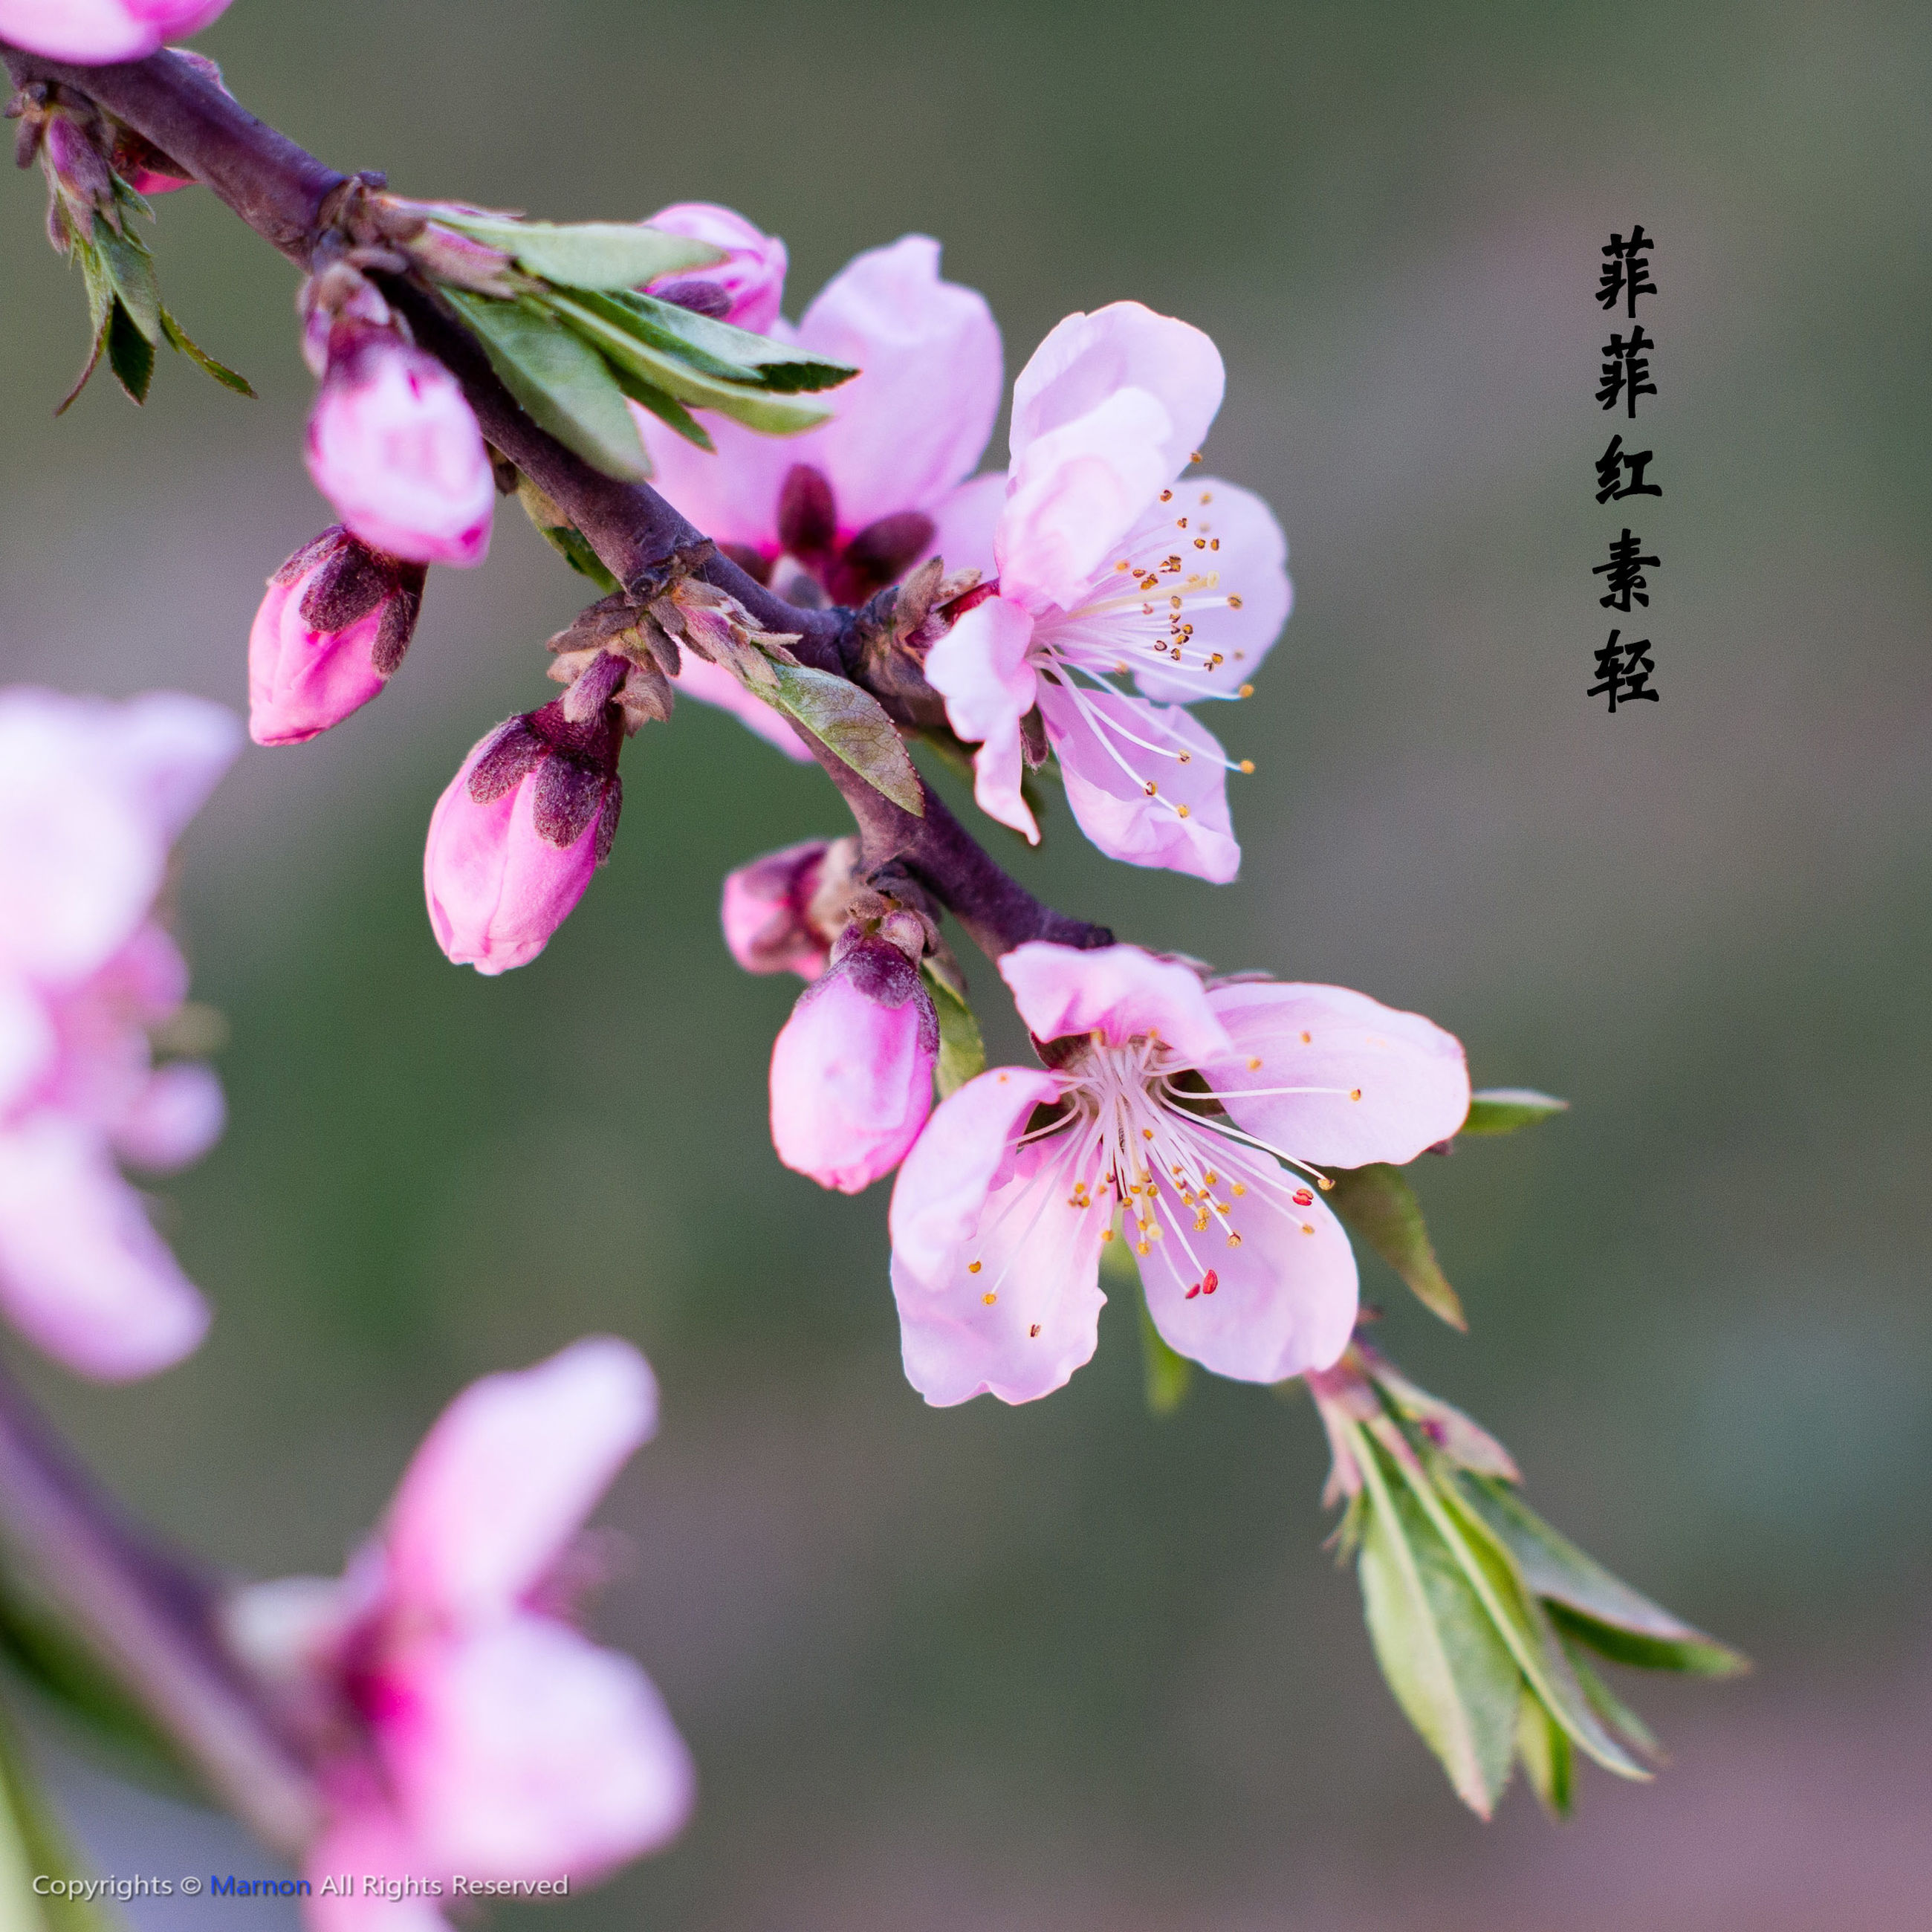 flower, freshness, fragility, growth, petal, focus on foreground, beauty in nature, close-up, pink color, nature, flower head, bud, blooming, stem, in bloom, blossom, plant, twig, branch, springtime